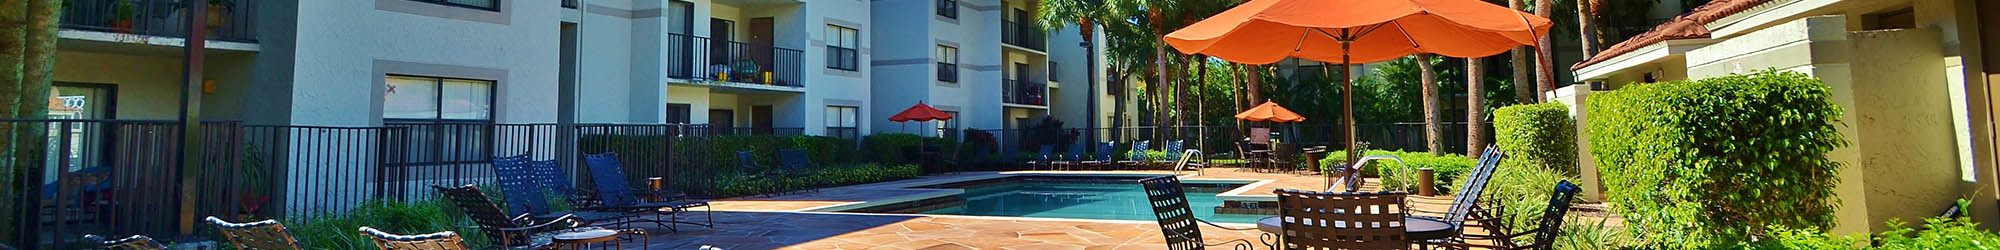 Contact Ashley Lake Park Apartments for information about our apartments in Boynton Beach